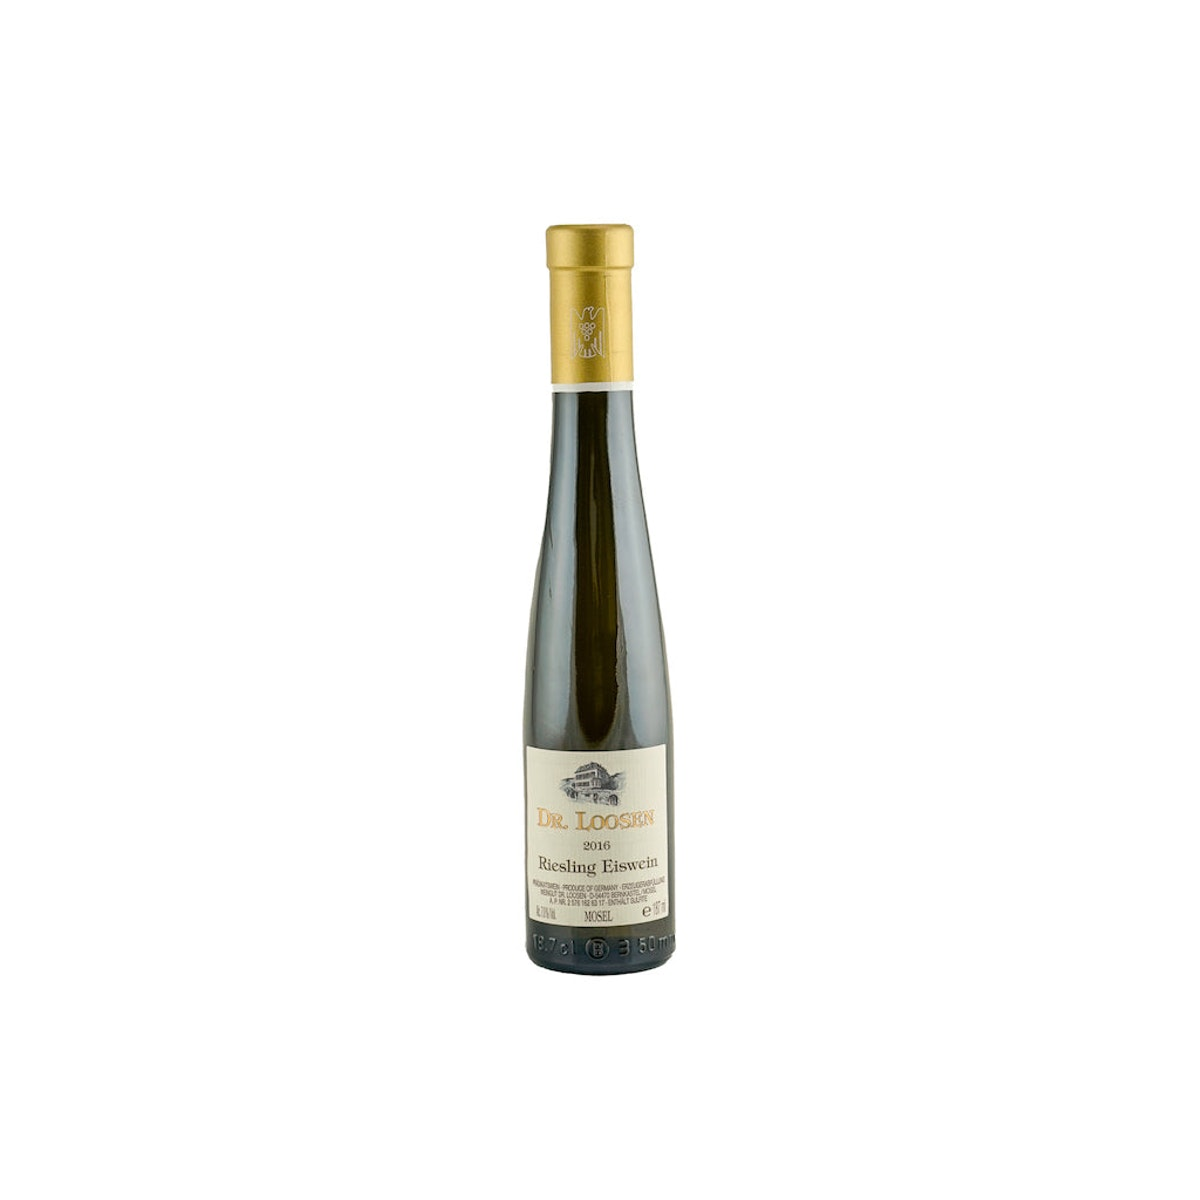 0,187L Riesling Eiswein, 2016